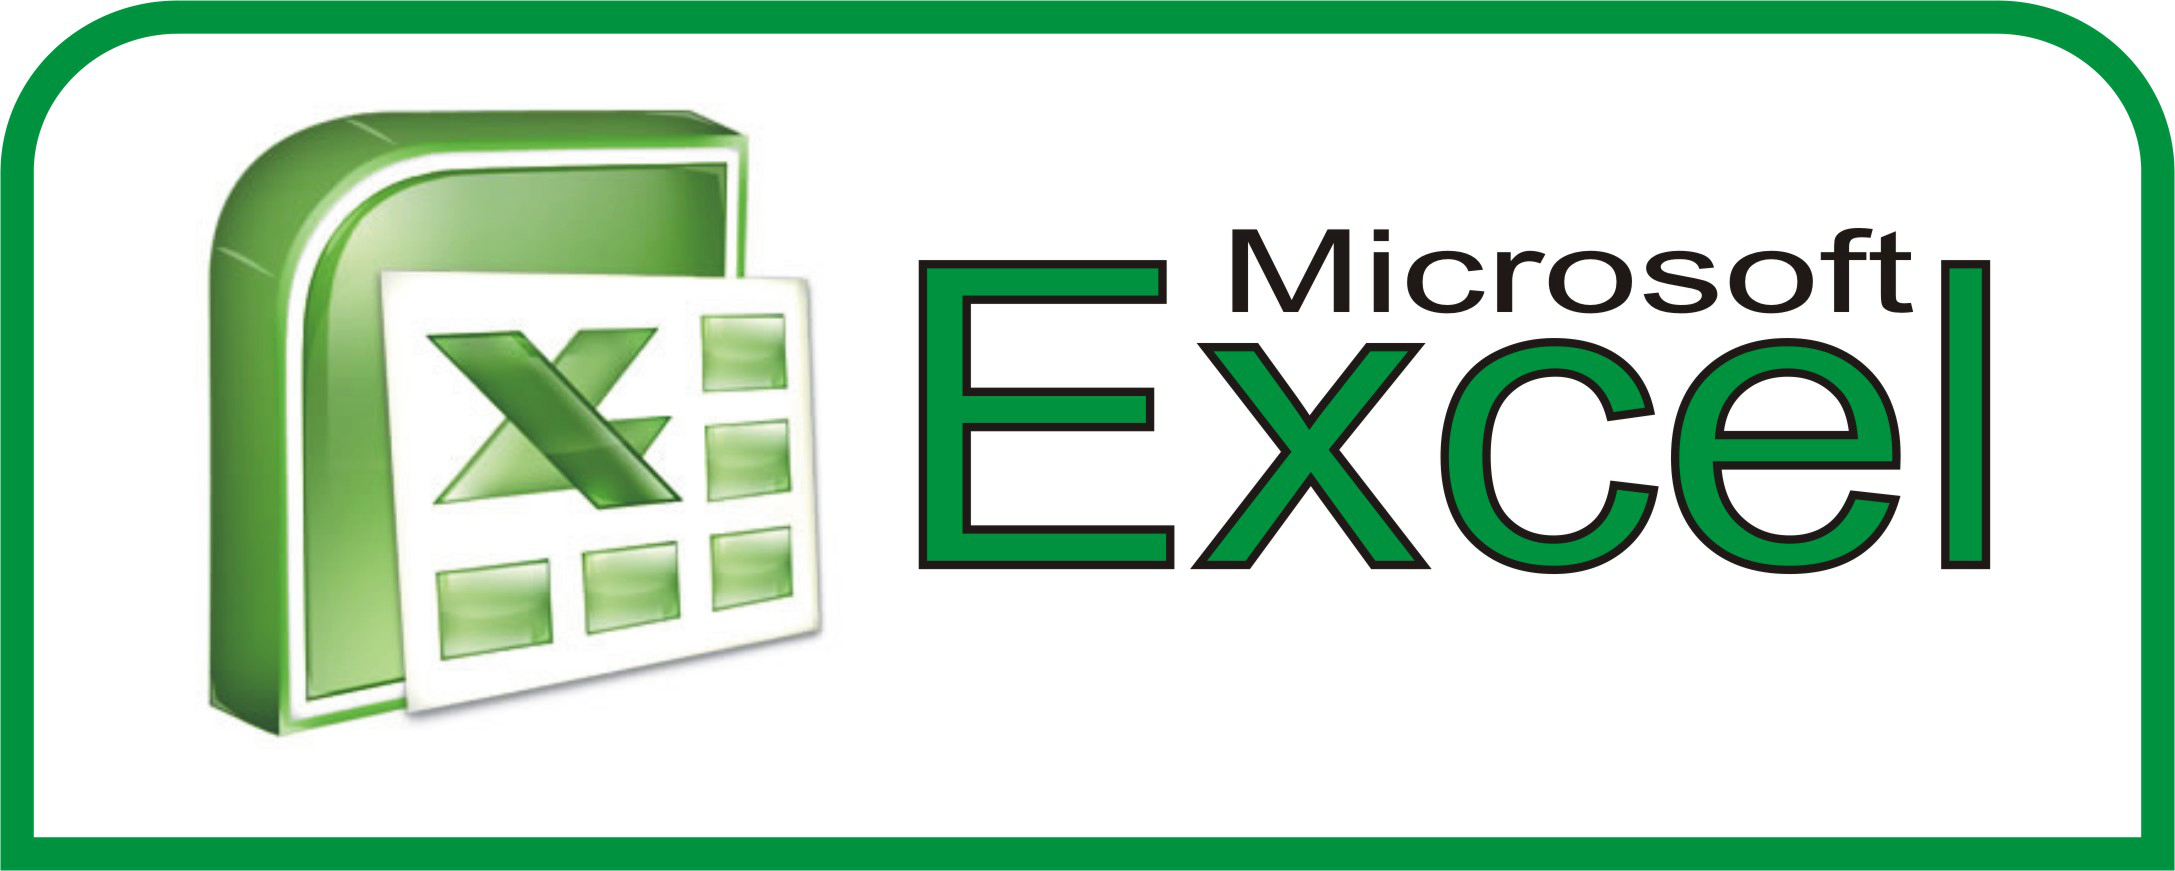 Ediblewildsus  Personable  Excel Shortcuts You Probably Didnt Know About  Techdissected With Goodlooking Excel Assessment Test Besides How To Insert Page Number In Excel Furthermore How To Write A Formula In Excel With Delightful Delete Row Shortcut Excel Also Row Excel In Addition Excel Text To Rows And How To Apply Conditional Formatting In Excel As Well As Where Is The Developer Tab In Excel Additionally Subscript Out Of Range Excel From Techdissectedcom With Ediblewildsus  Goodlooking  Excel Shortcuts You Probably Didnt Know About  Techdissected With Delightful Excel Assessment Test Besides How To Insert Page Number In Excel Furthermore How To Write A Formula In Excel And Personable Delete Row Shortcut Excel Also Row Excel In Addition Excel Text To Rows From Techdissectedcom